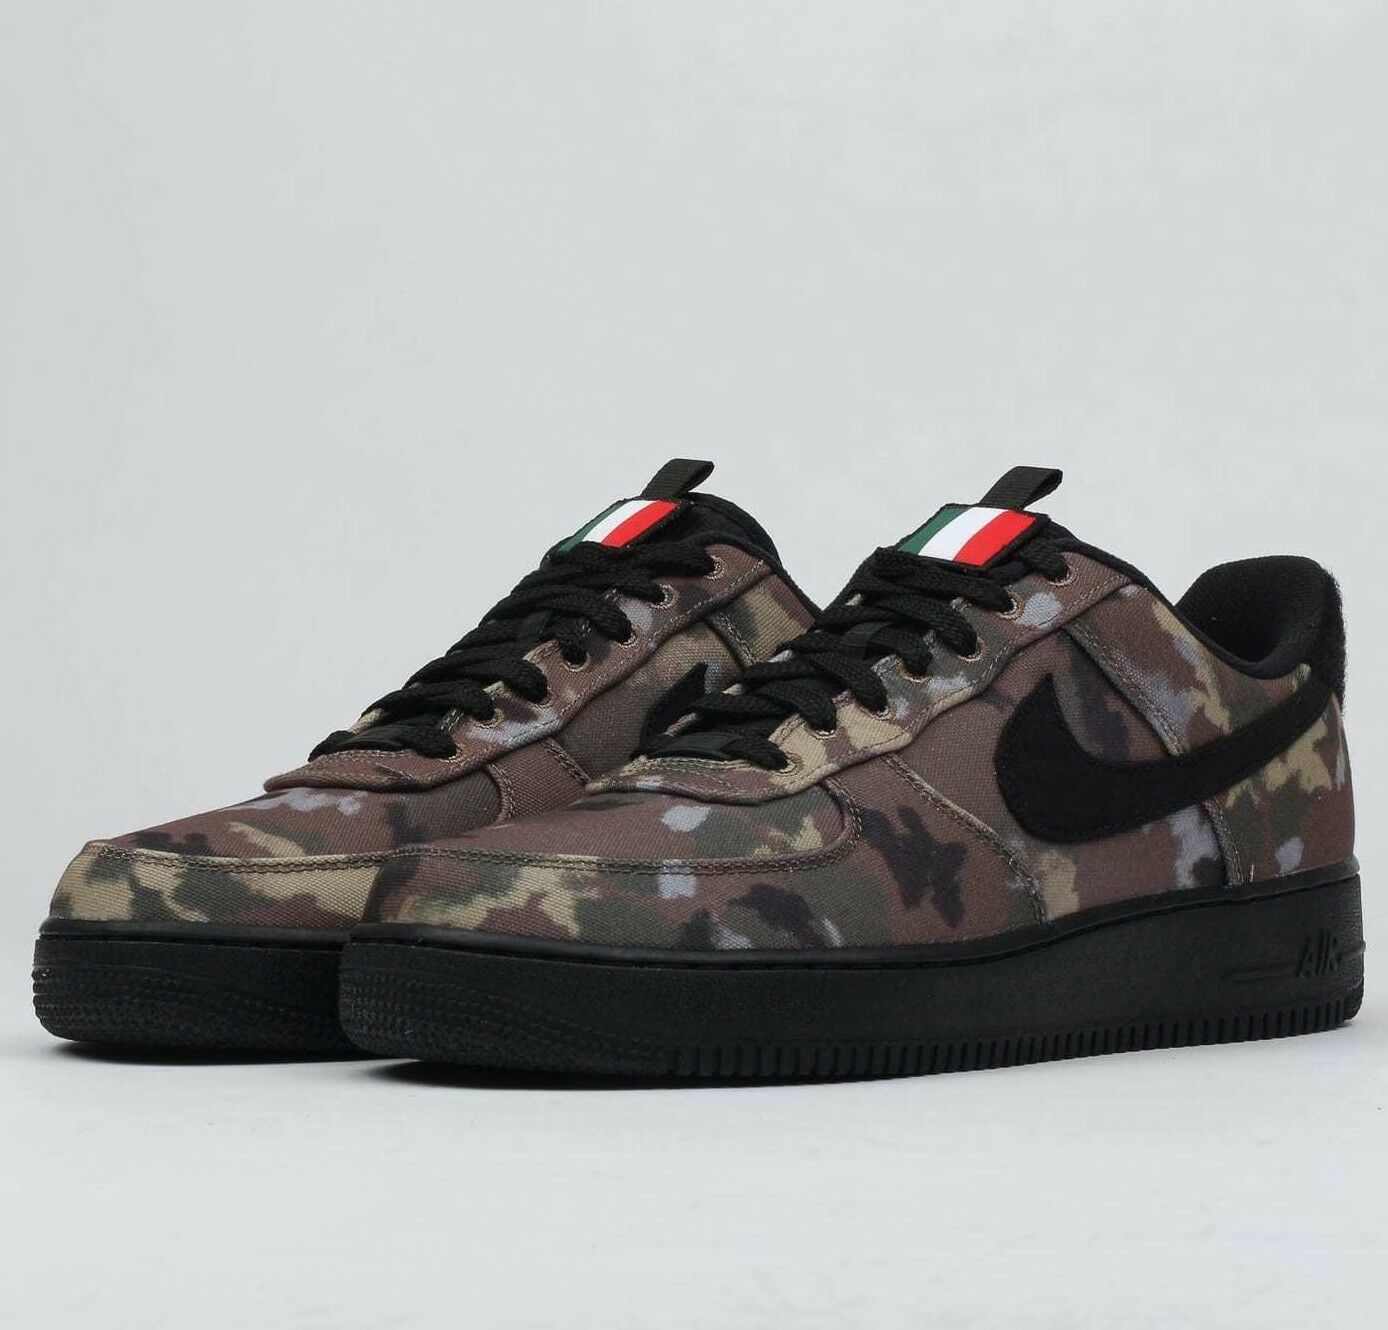 Nike Air Force 1 '07 Low  Camo Pack AV7012-200 AF1 Mens Ale Brown shoes NIB